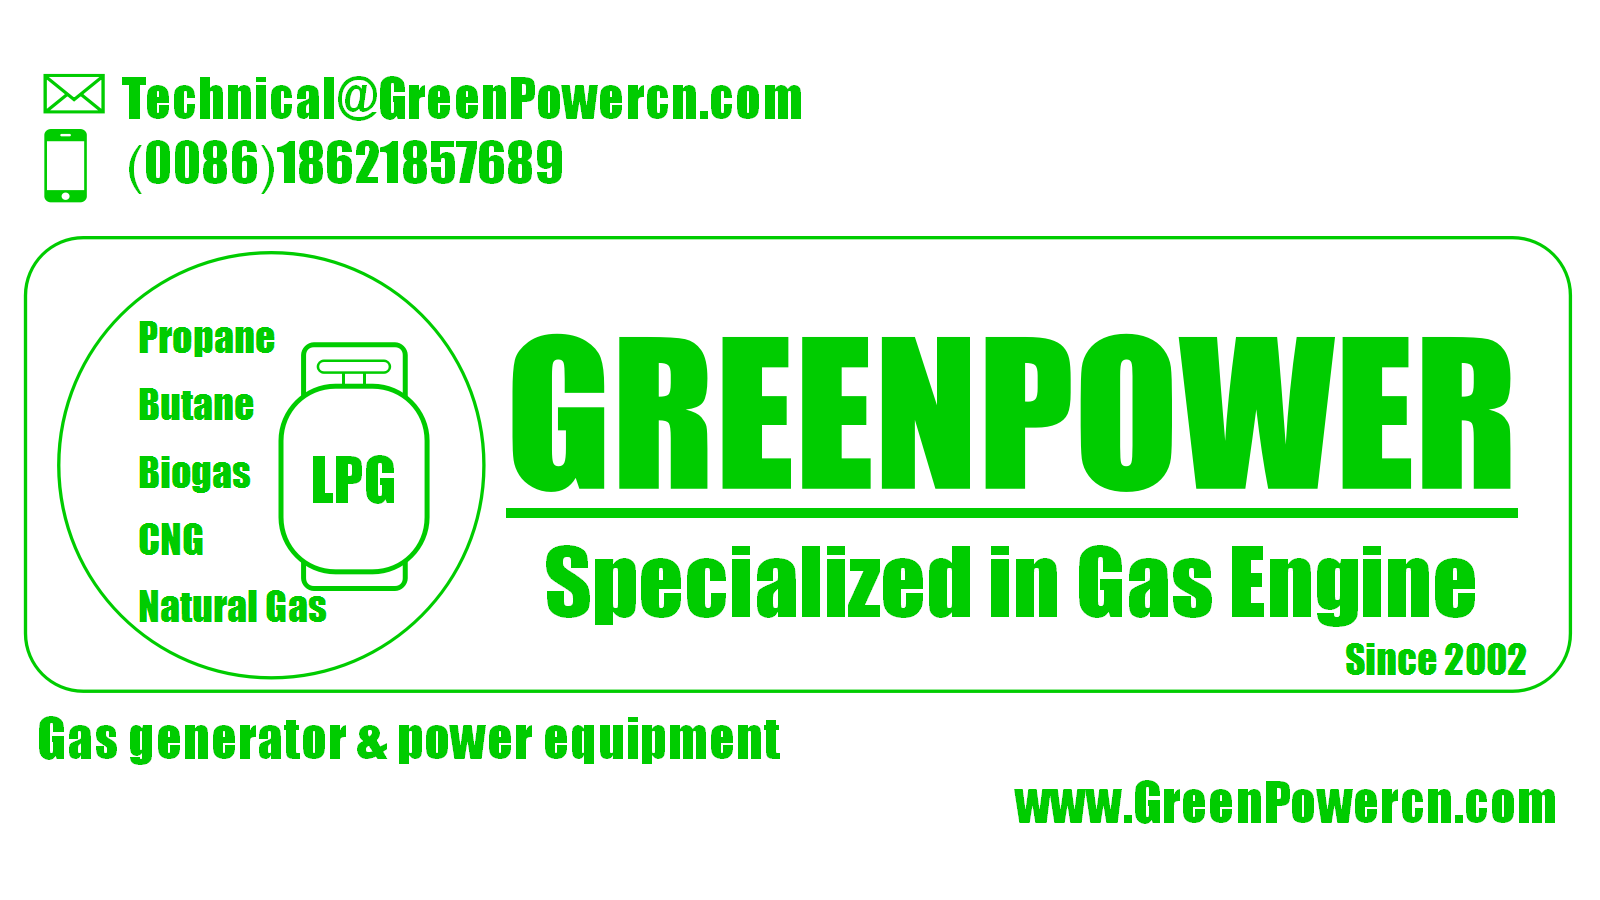 973 Contactus Co Ltd Energy 163 Com Mail: Green Power Clean Energy Co., Ltd